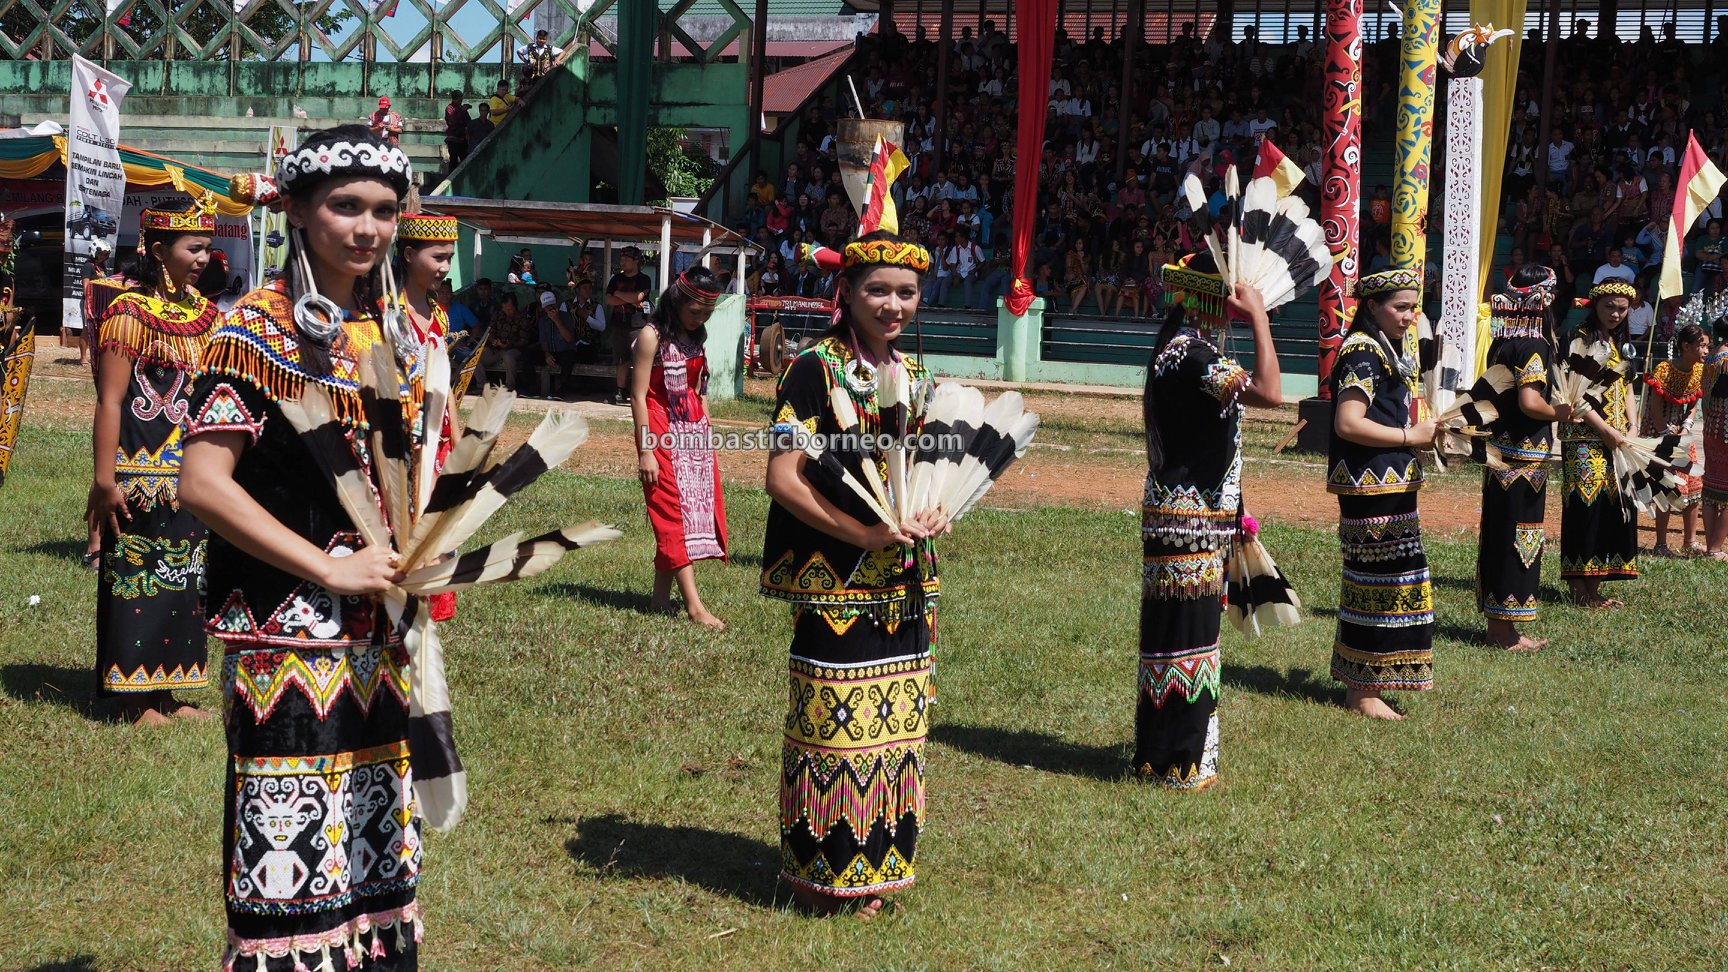 Gawai Dayak Kapuas Hulu, traditional, budaya, Indonesia, Kalimantan Barat, destination, ethnic, indigenous, tribe, Tourism, tourist attraction, travel guide, 探索婆罗洲游踪, 印尼西加里曼丹, 富都原住民文化